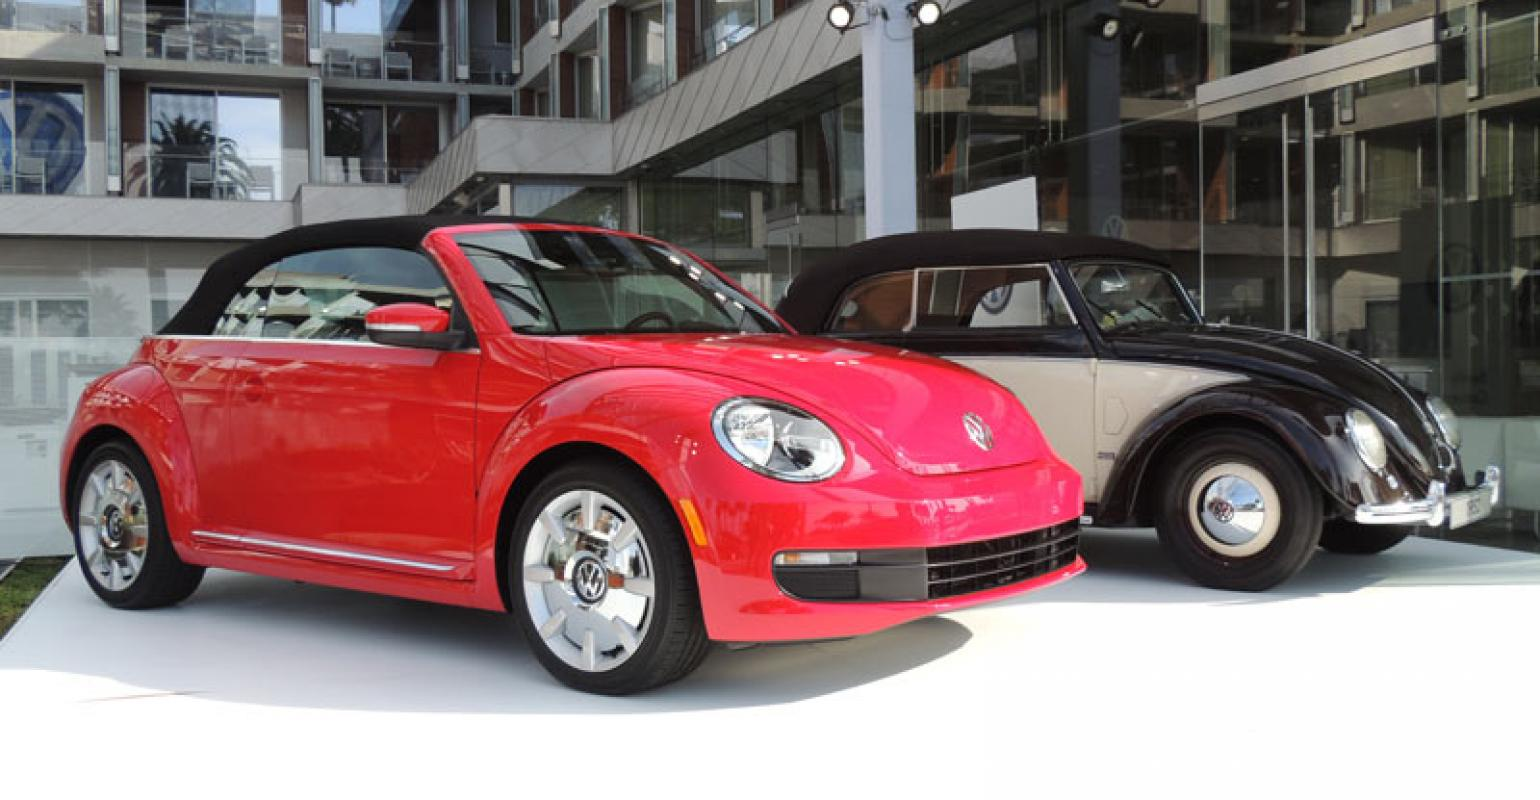 Vw Unveils Beetle Convertible In La Steps Up Gender Neutral Push Wardsauto